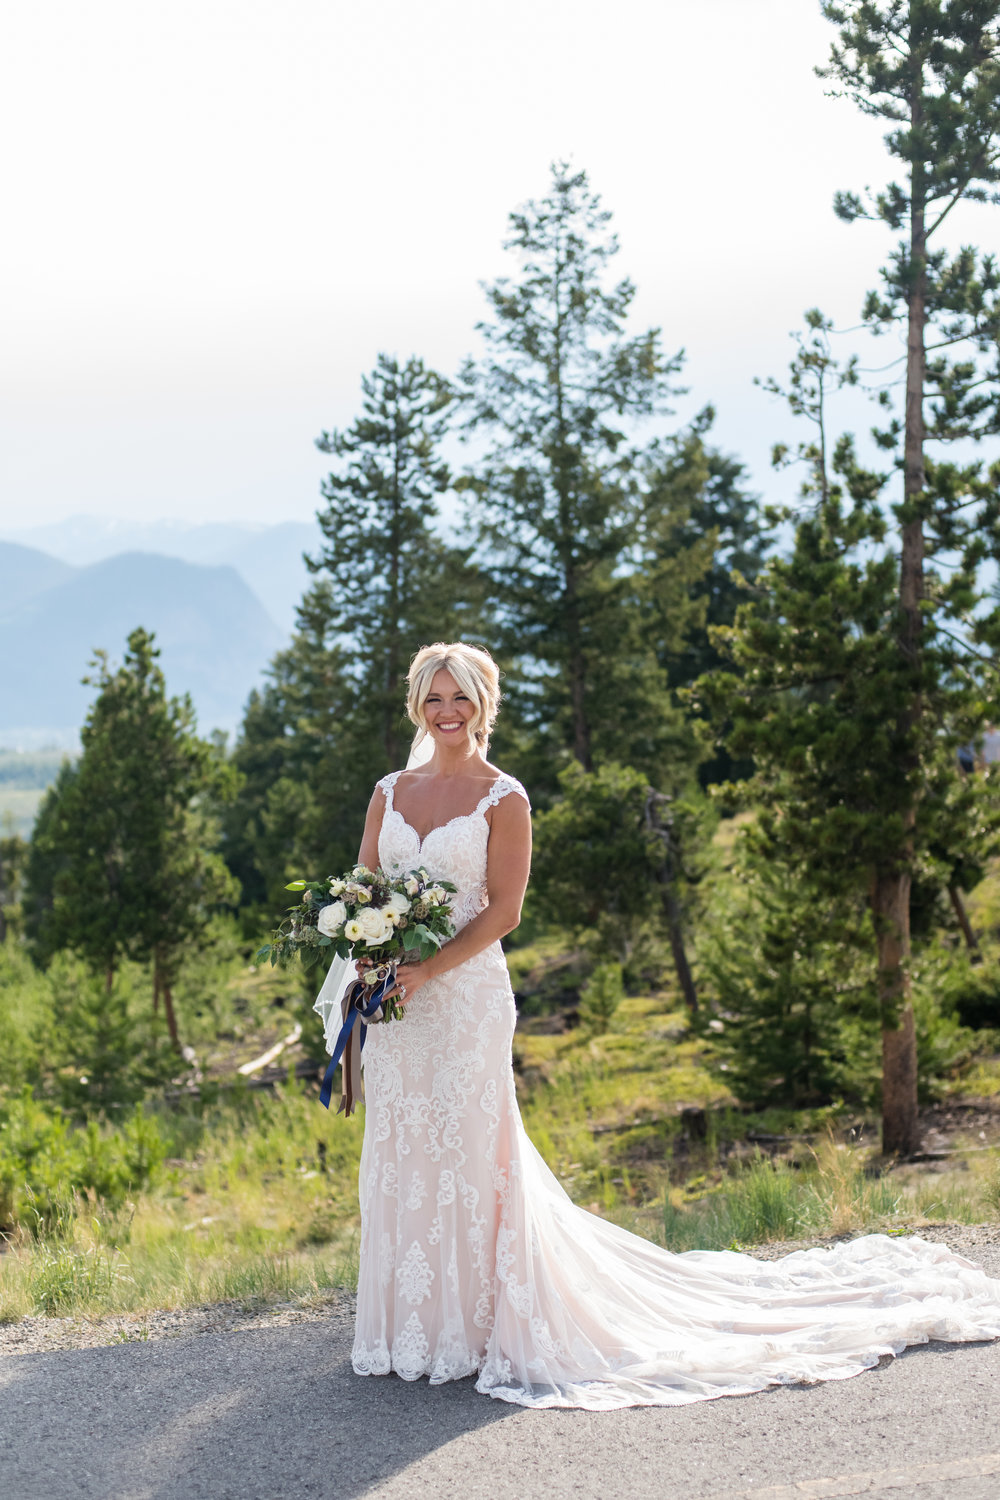 {Photos by: Andrea Flanagan Photography}